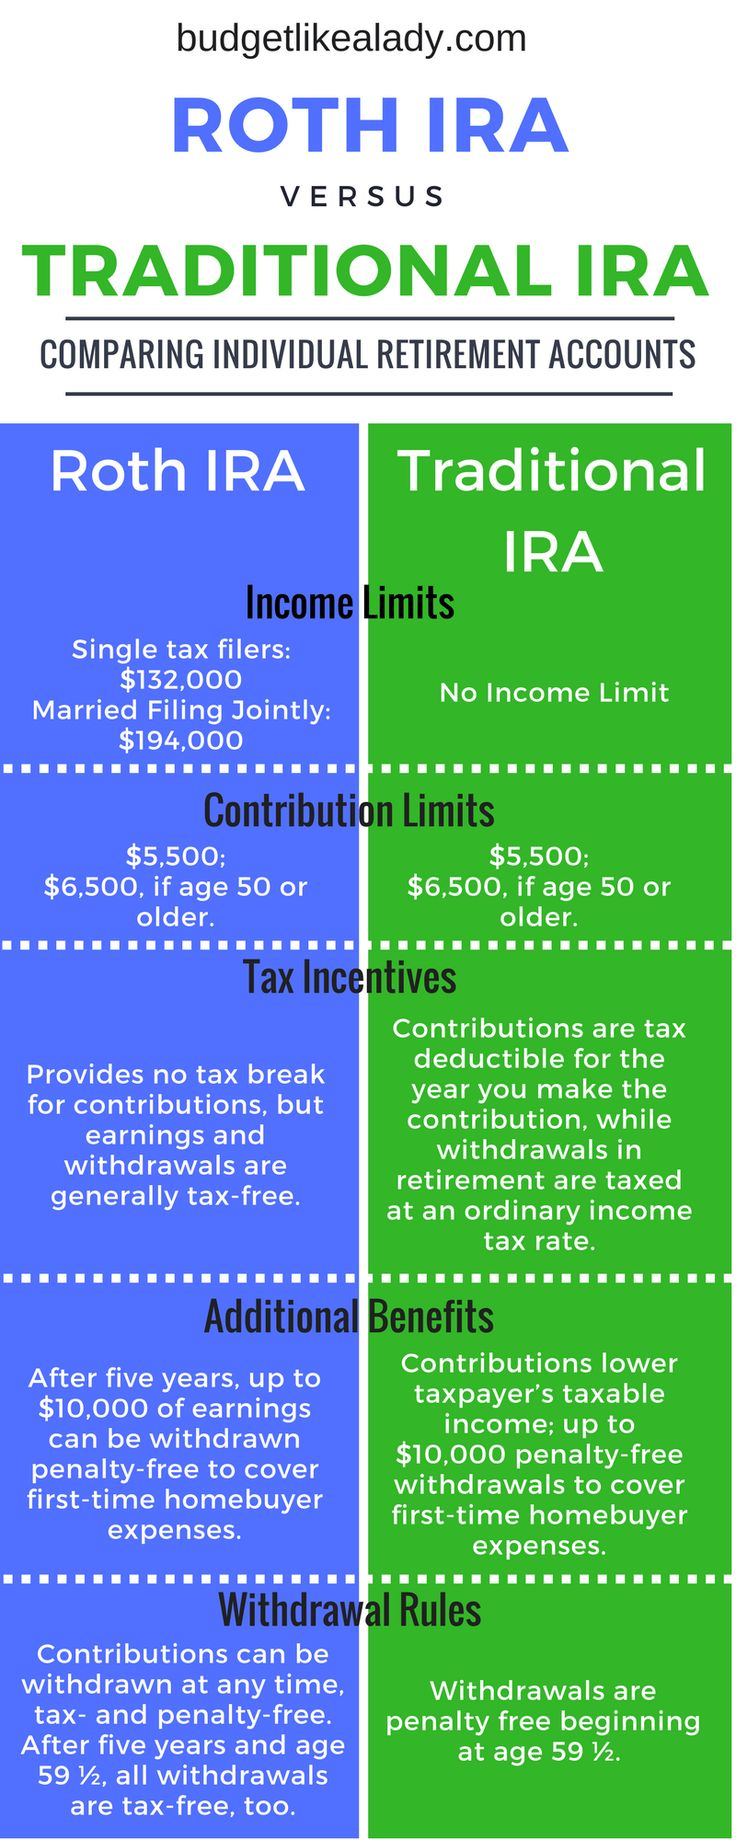 Roth vs Traditional IRA Comparison